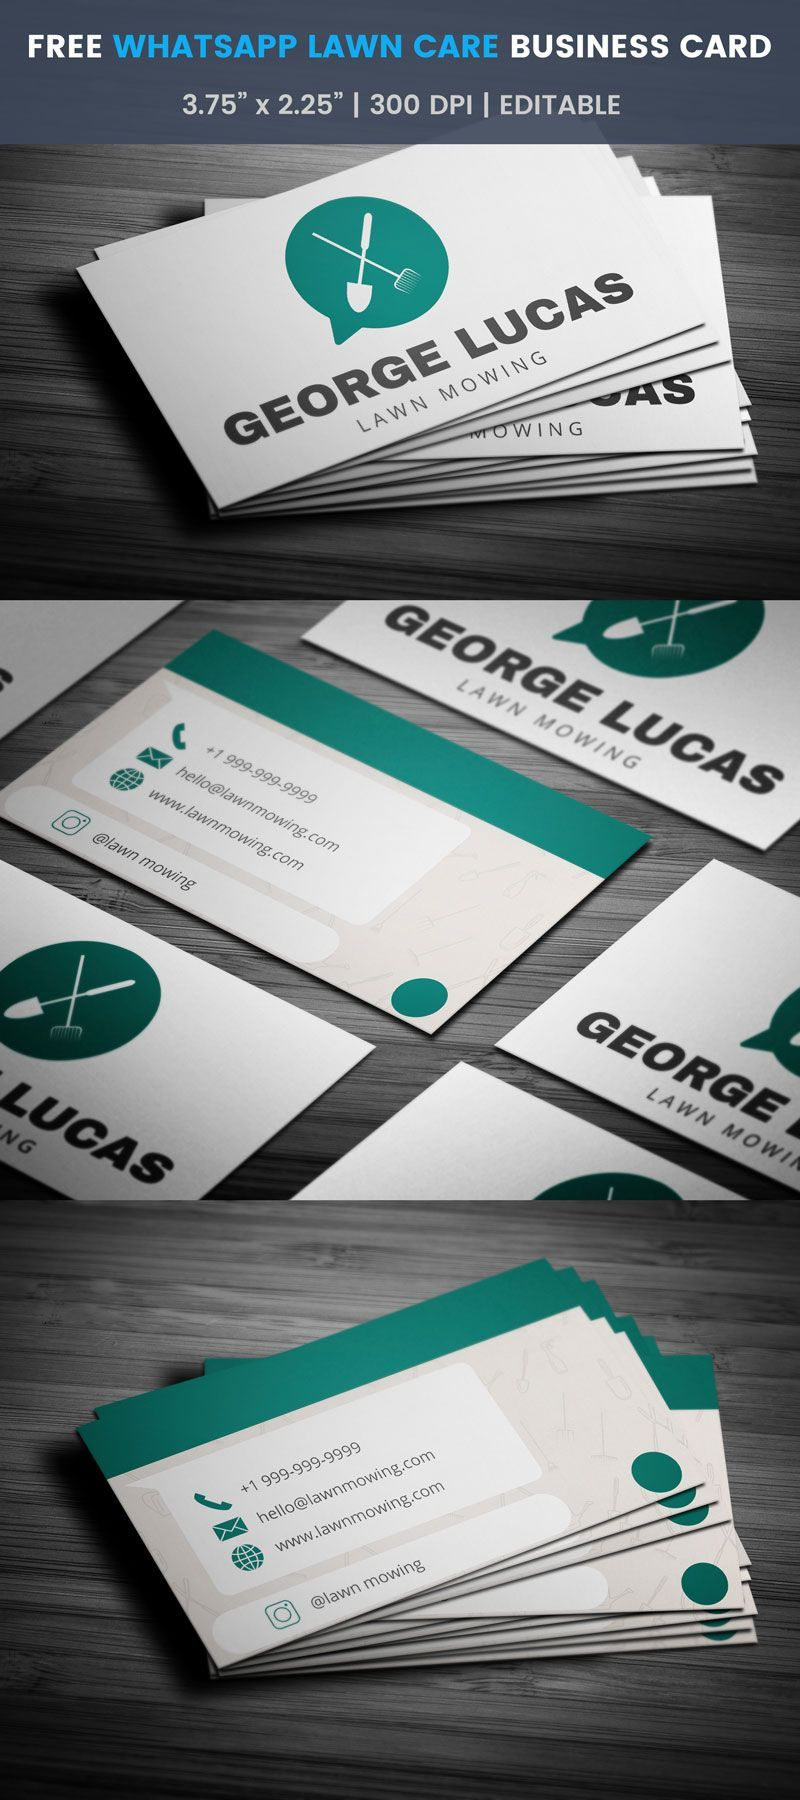 Whatsapp Themed Lawn Care Business Card Full Preview Within Lawn Care Business Card Photography Business Cards Lawn Care Business Cards Zazzle Business Cards